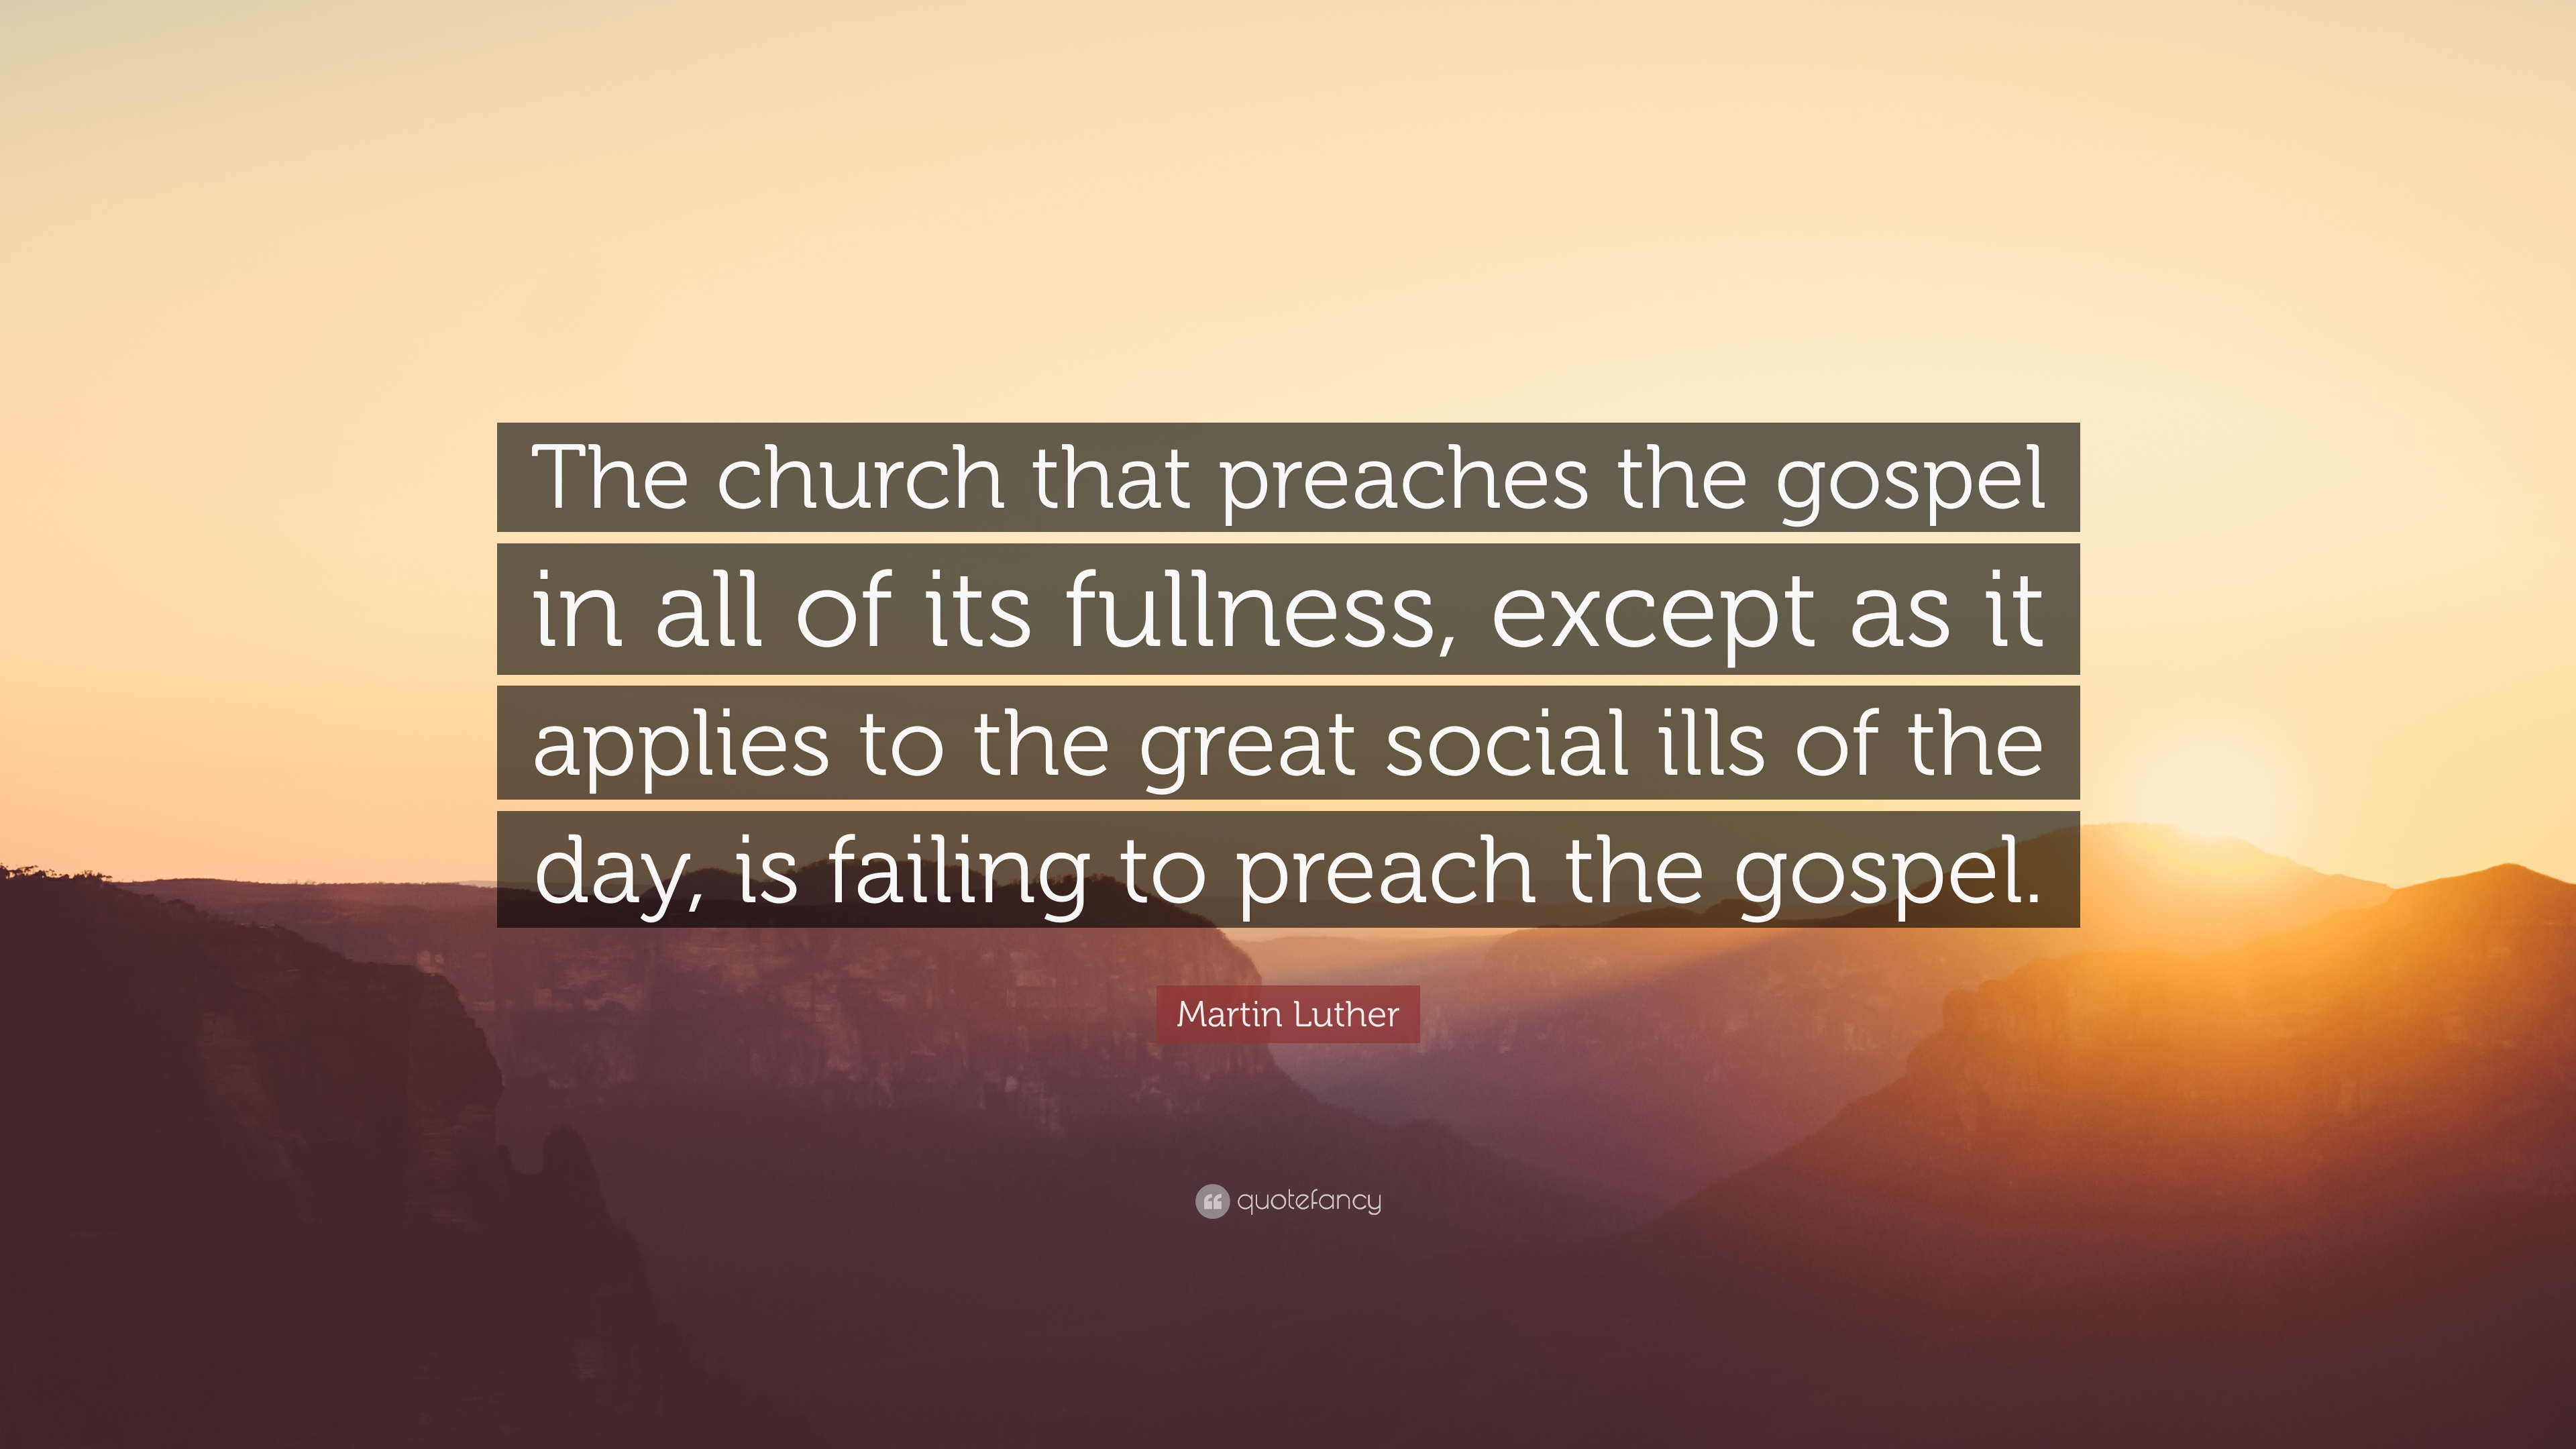 Image result for luther quote about preaching gospel social ills